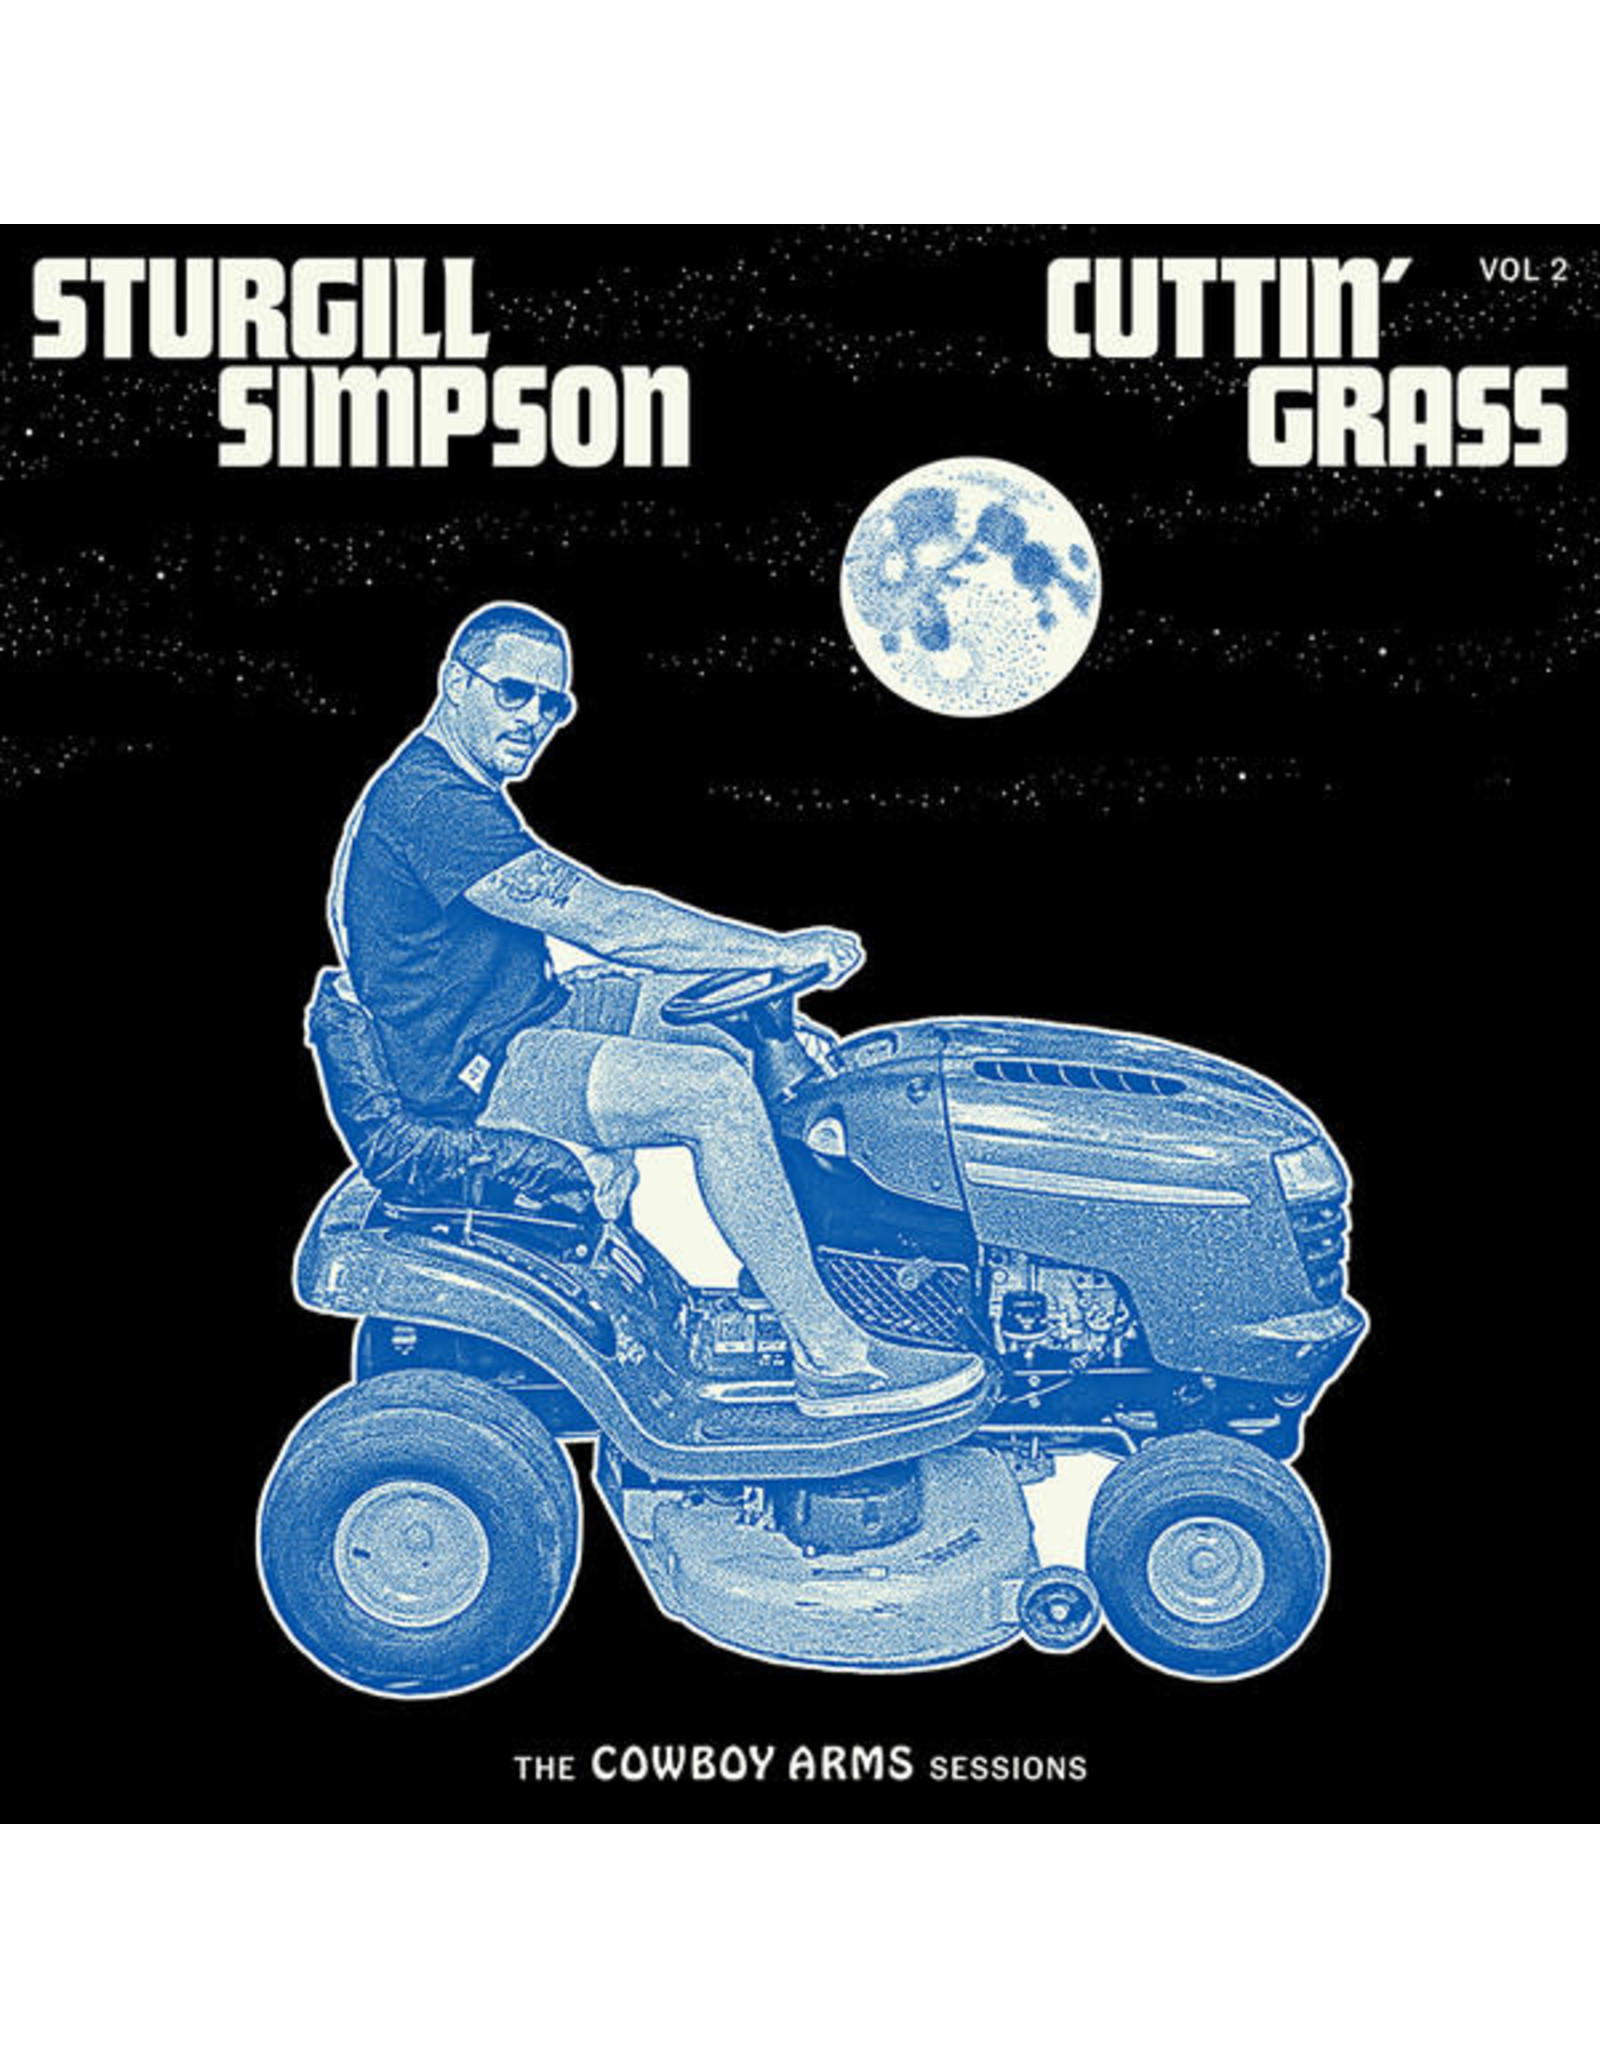 New Vinyl Sturgill Simpson - Cuttin' Grass Vol. 2: Cowboy Arms Sessions (IEX, Colored) LP